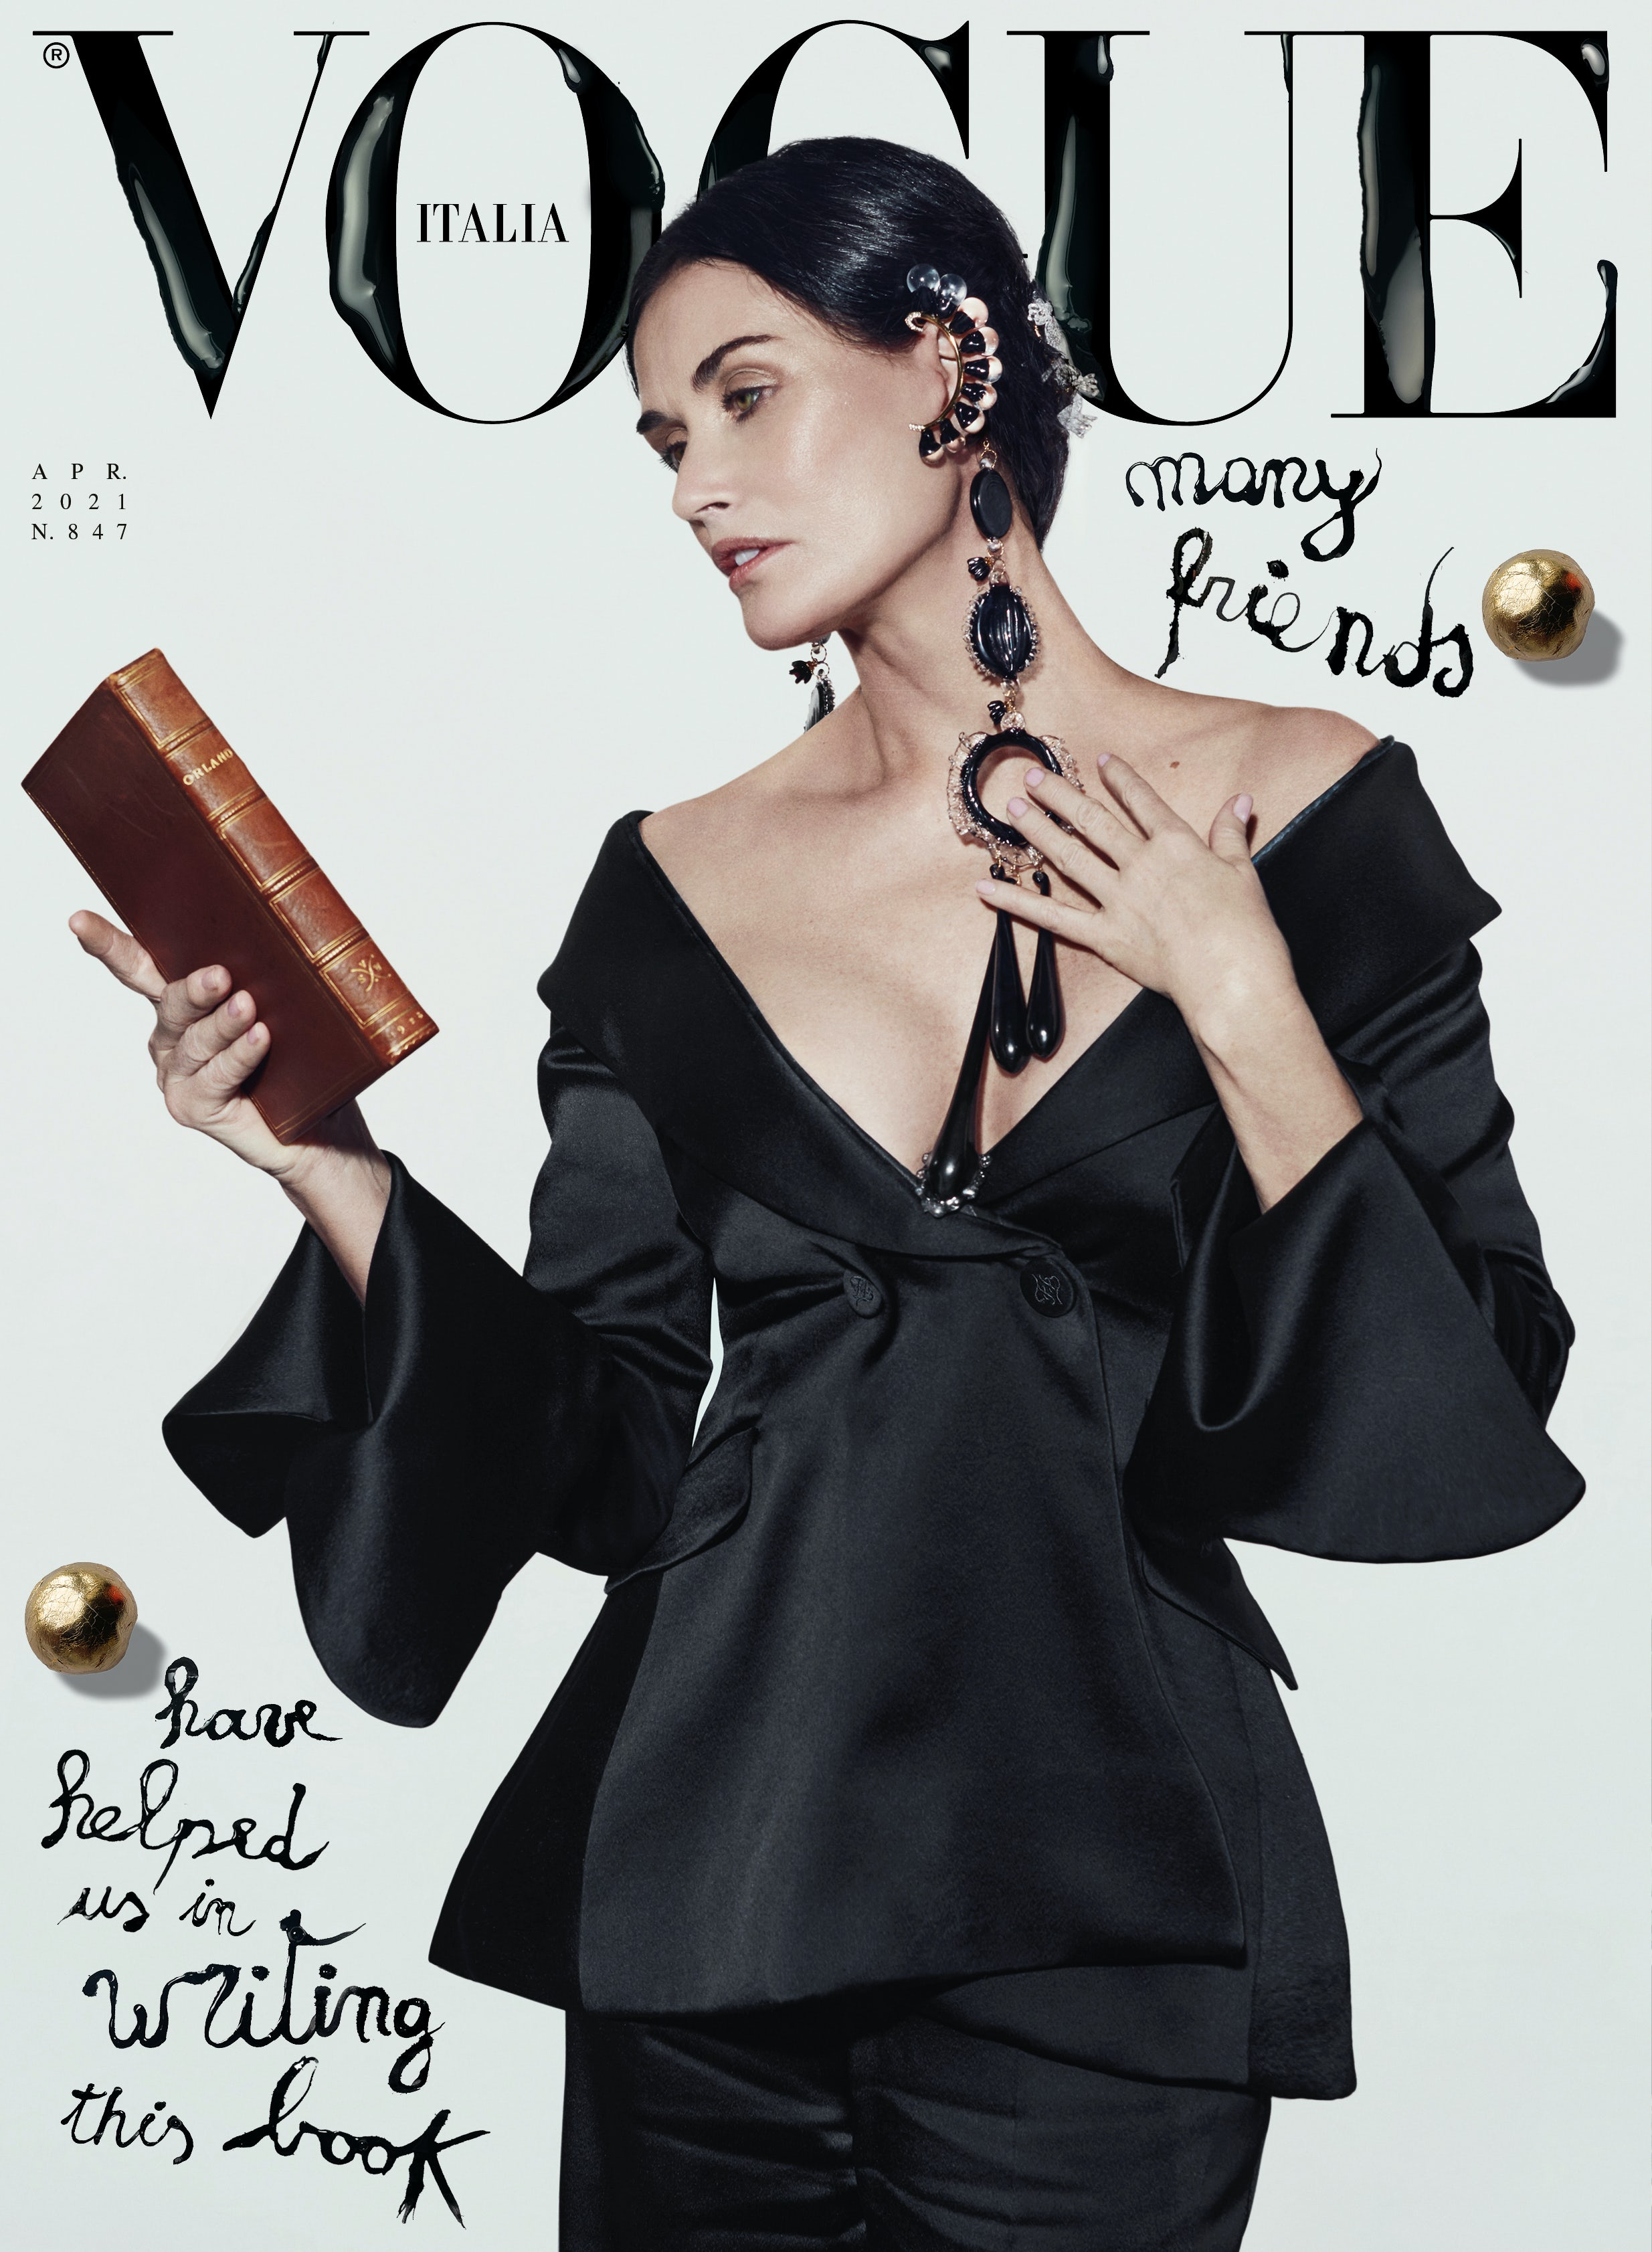 Demi Moore wearing Fendi photographed by Brett Lloyd for the cover of the April 2021 issue of Vogue Italia, guest edited by Kim Jones. Vogue Italia.